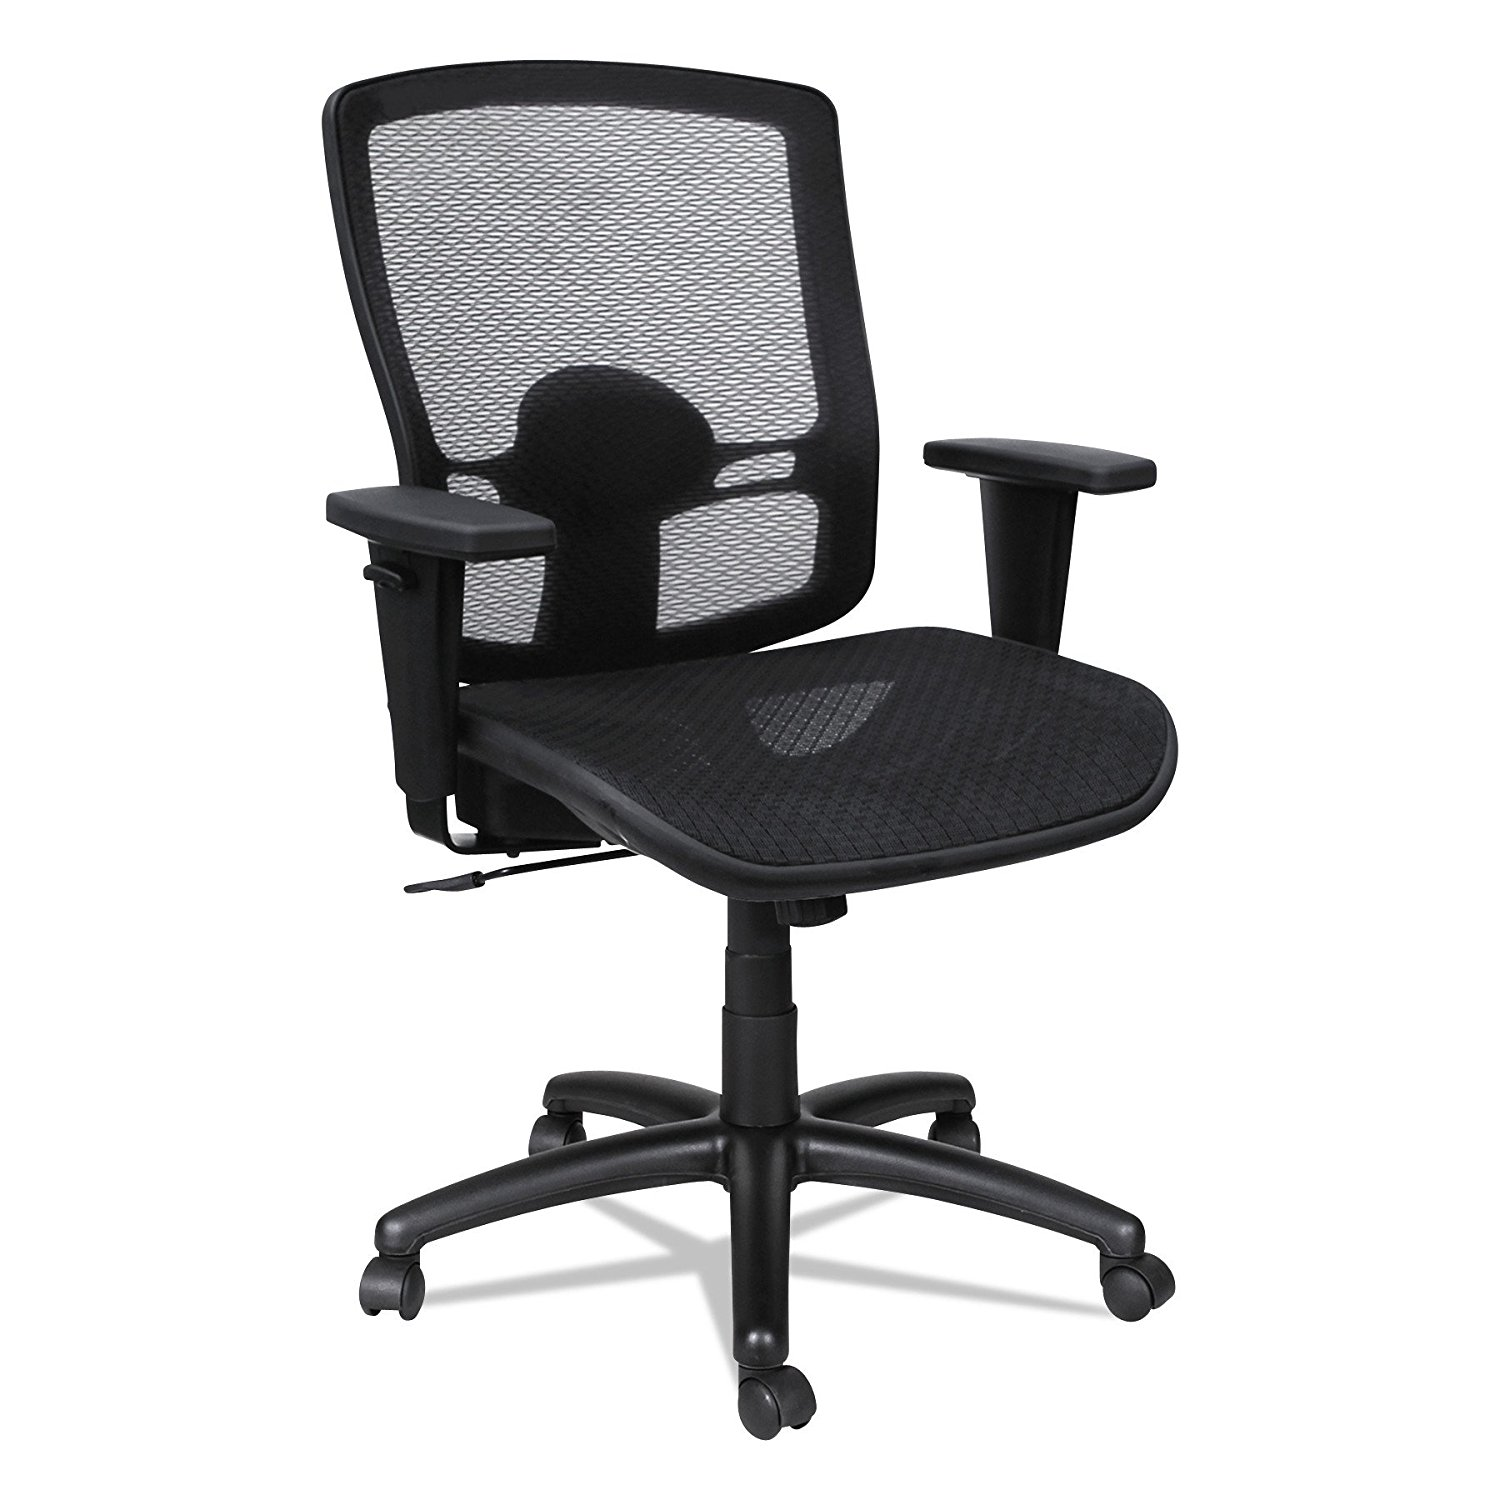 Alera Chair Alera Etros Series Mesh Mid Back Synchro Tilt Chair In